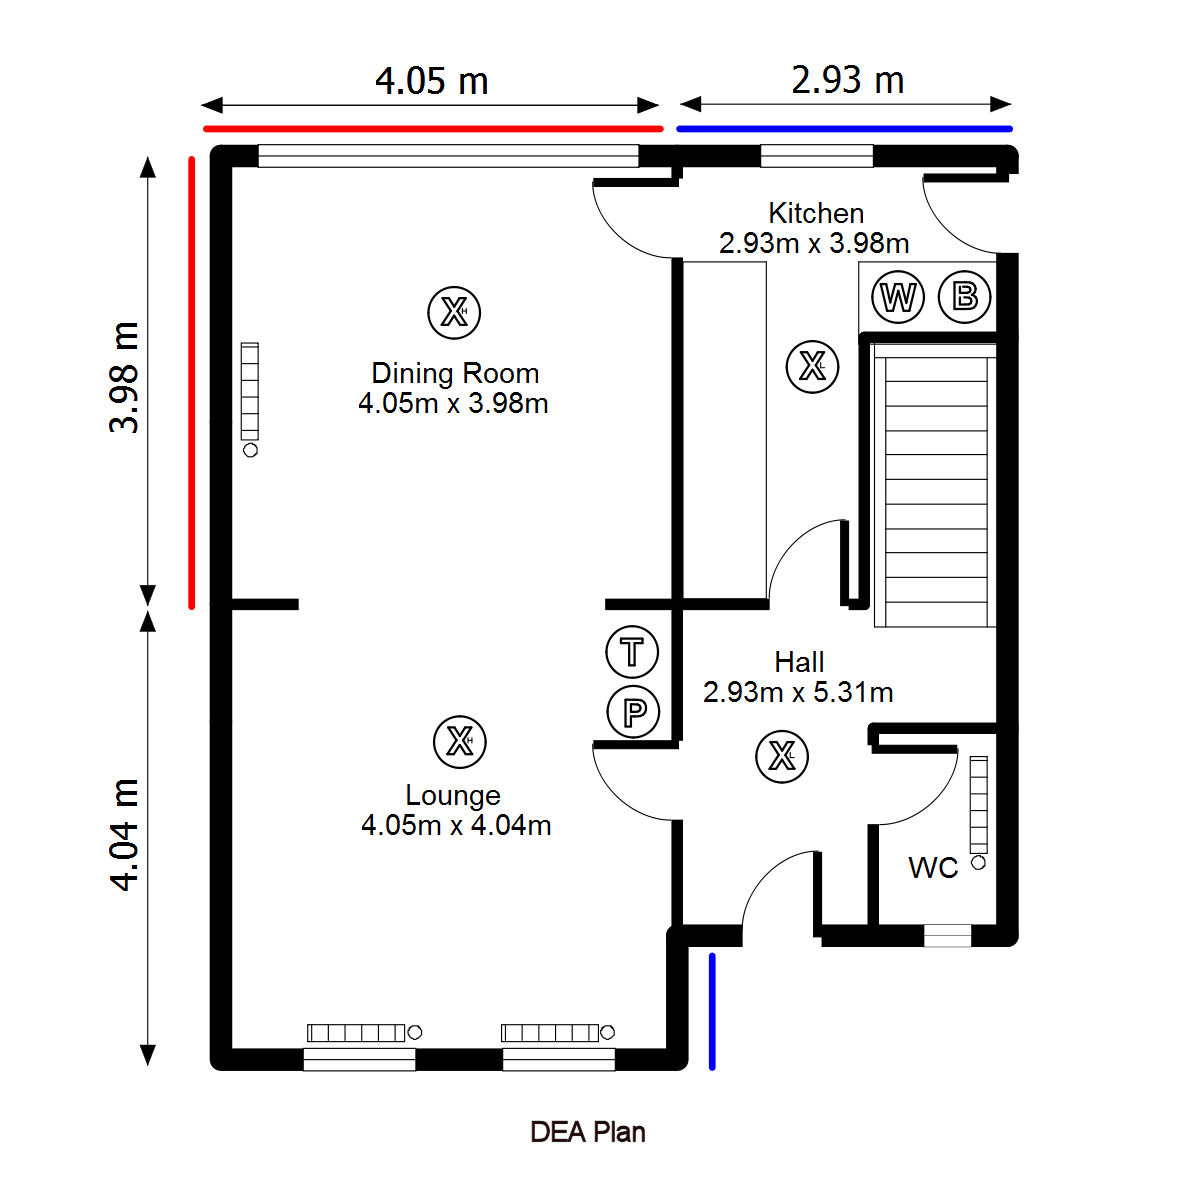 Floor Plan for DEA use created with Visual Floor Planner